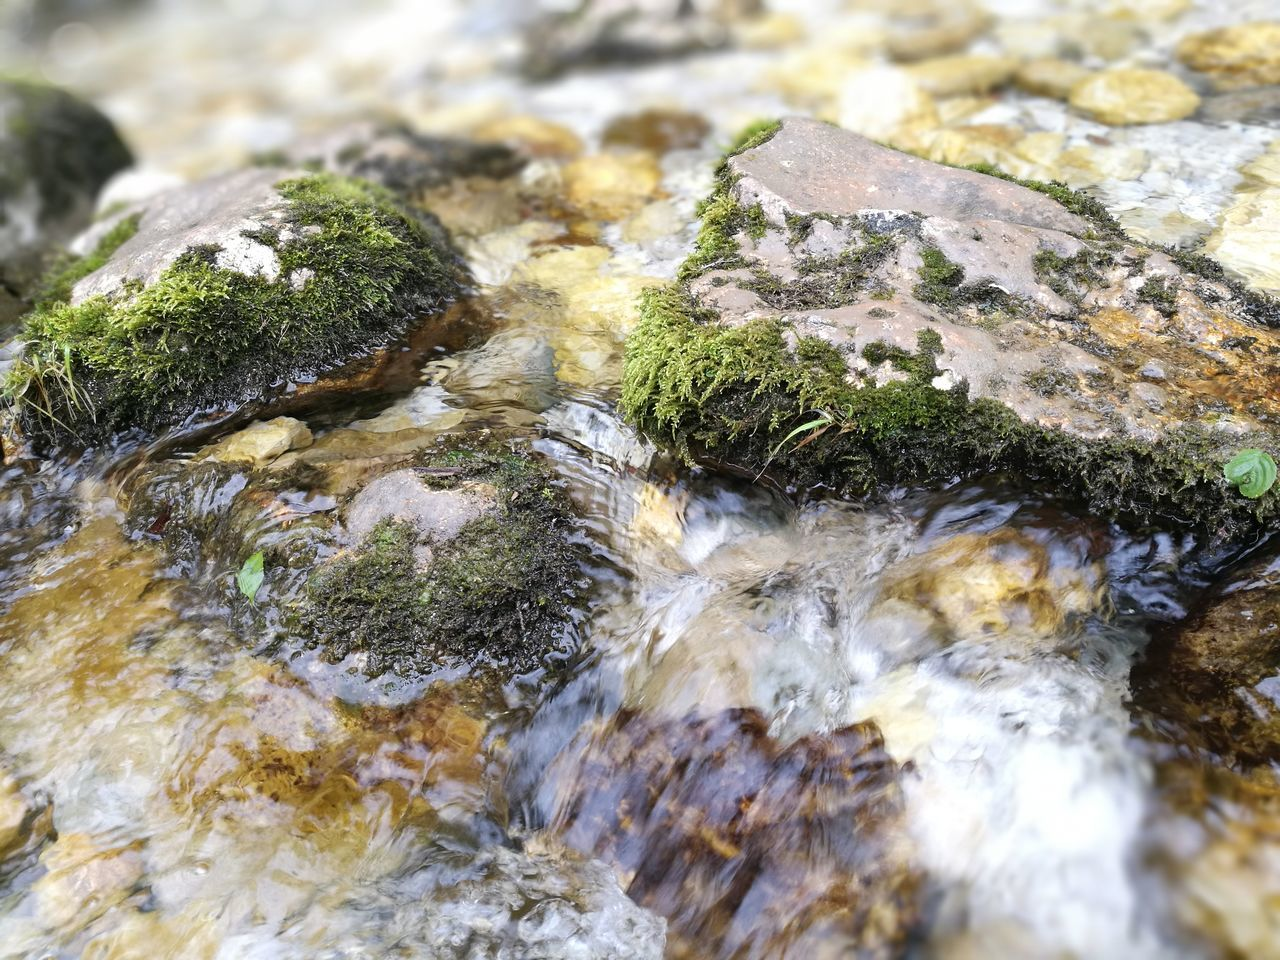 Water Nature Close-up No People Day Outdoors Moss Beauty In Nature The Purist (no Edit, No Filter) The Great Outdoors - 2017 EyeEm Awards Waterfall Tranquility River Beauty In Nature Clean River Underwater Rock - Object Nature Scenics Fast River